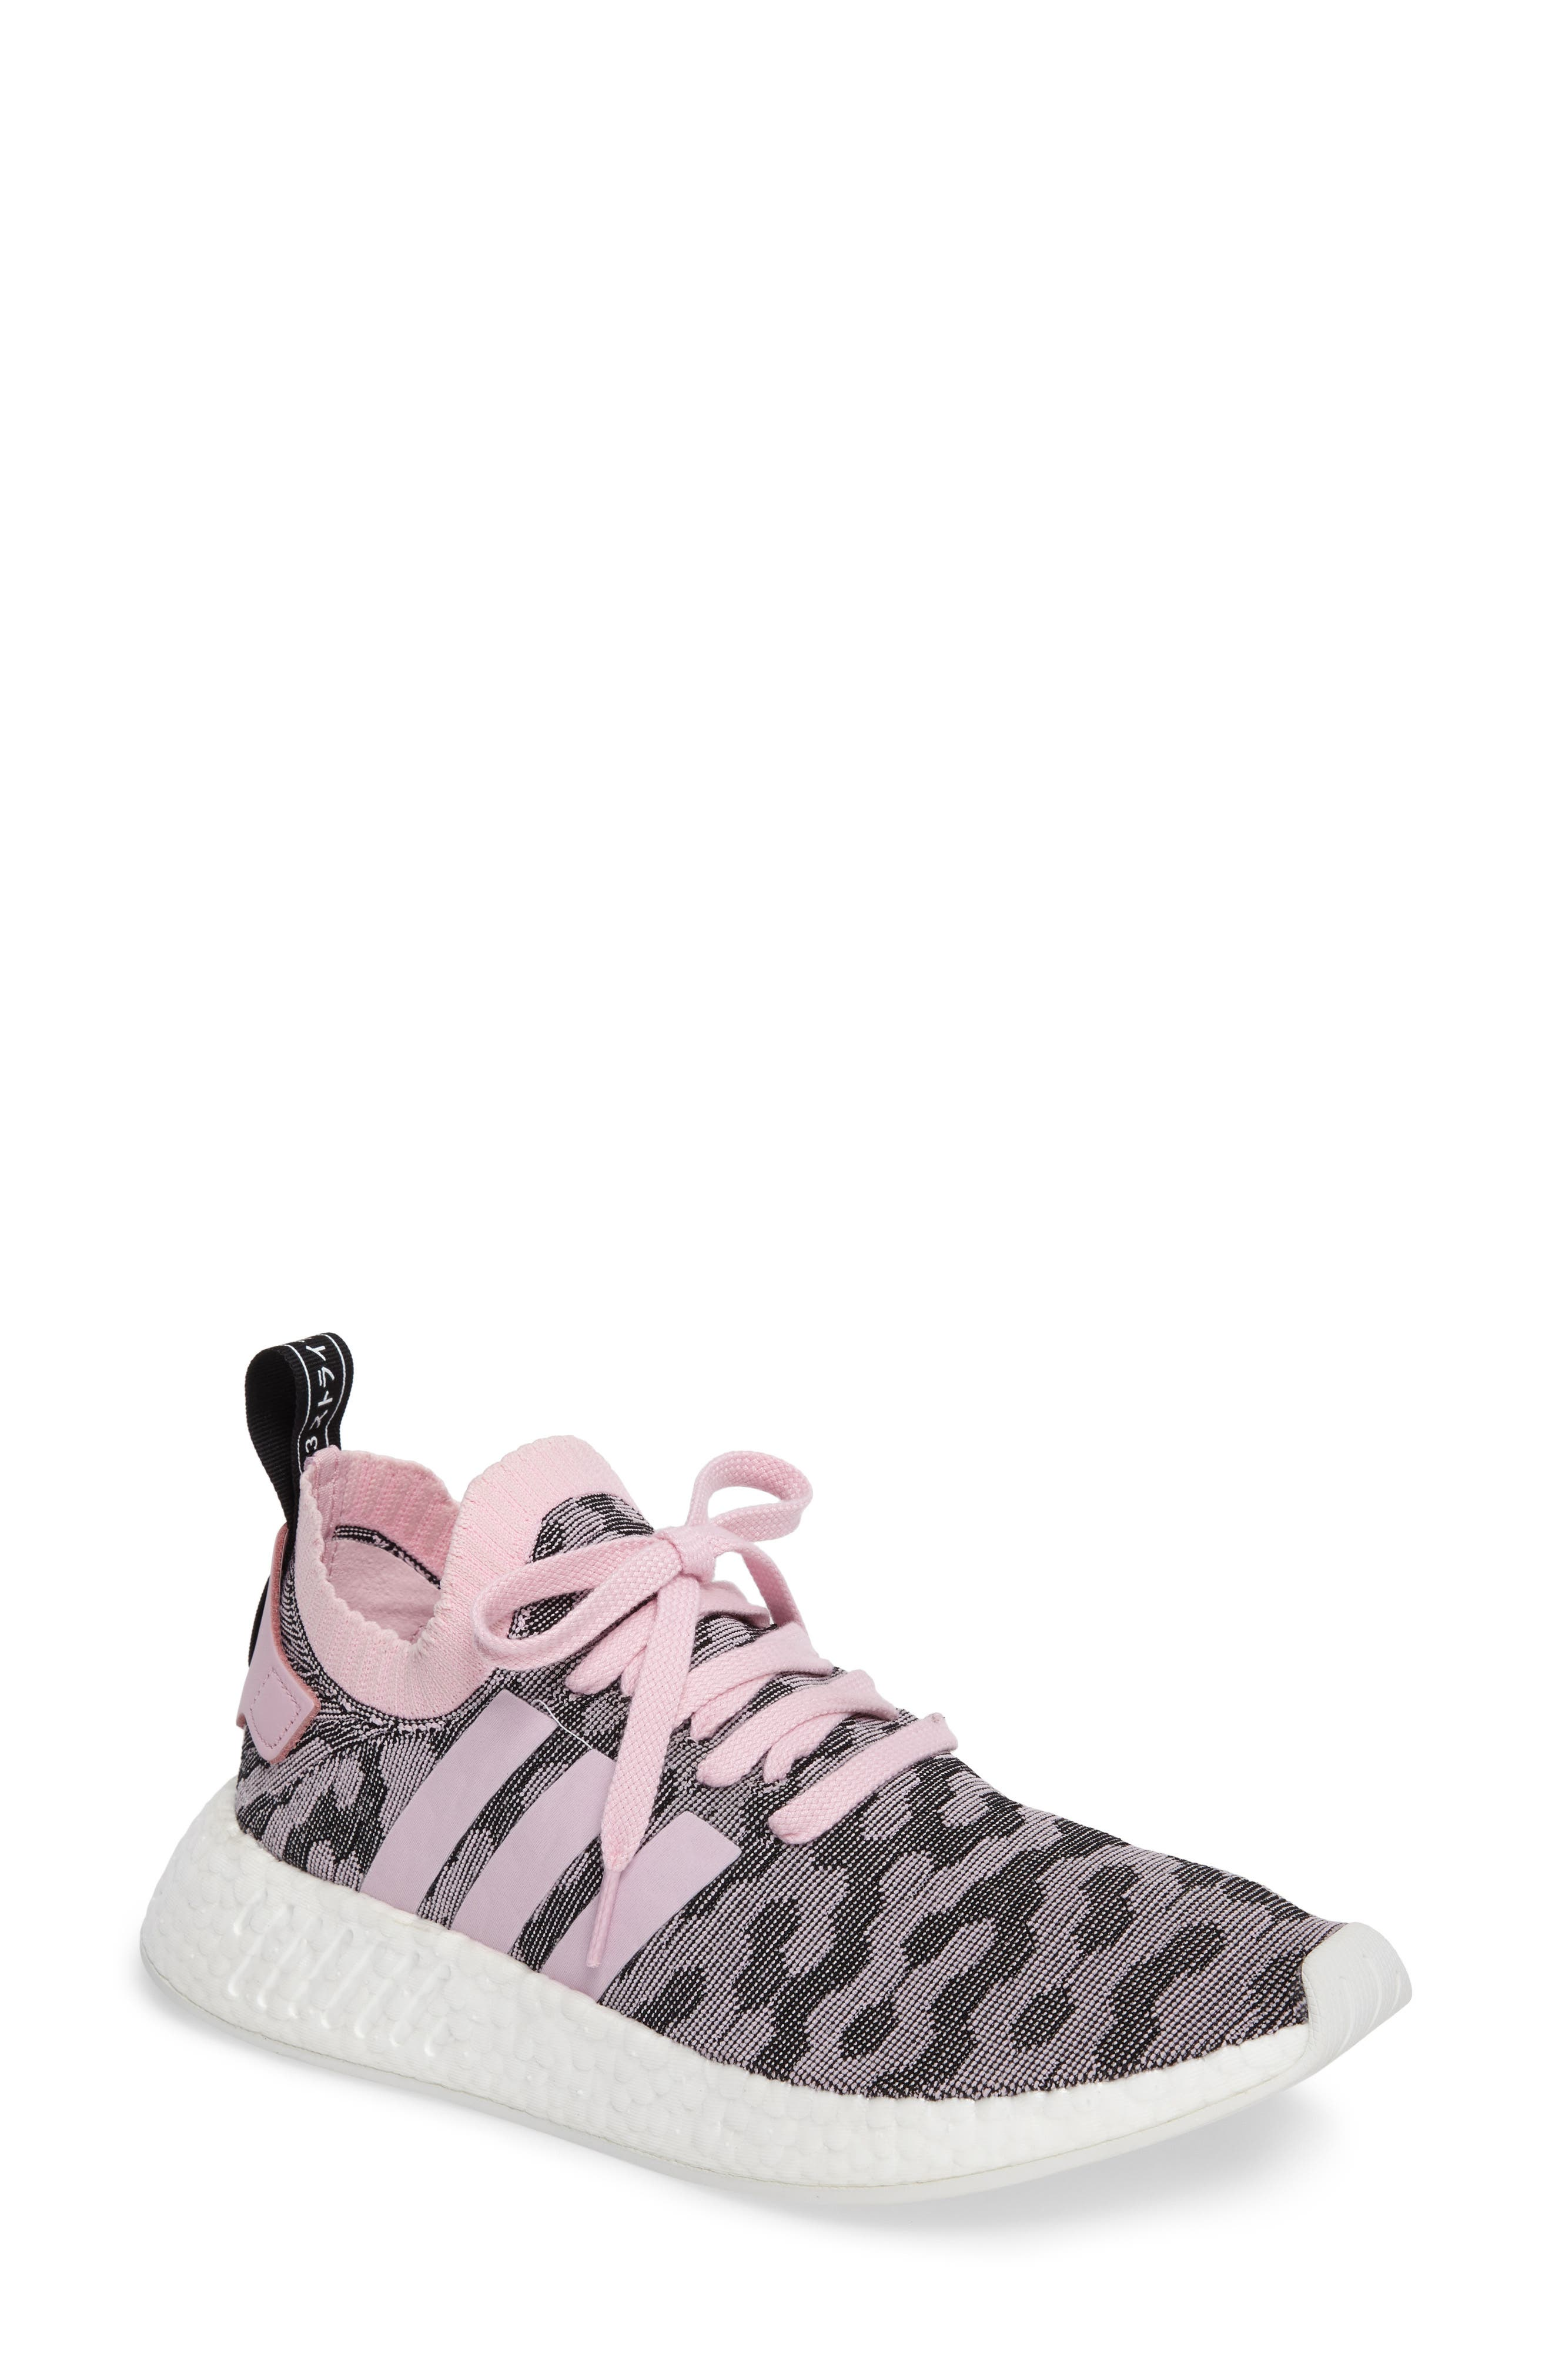 adidas shoes nmd womens pink. main image - adidas nmd r2 primeknit athletic shoe (women) shoes nmd womens pink